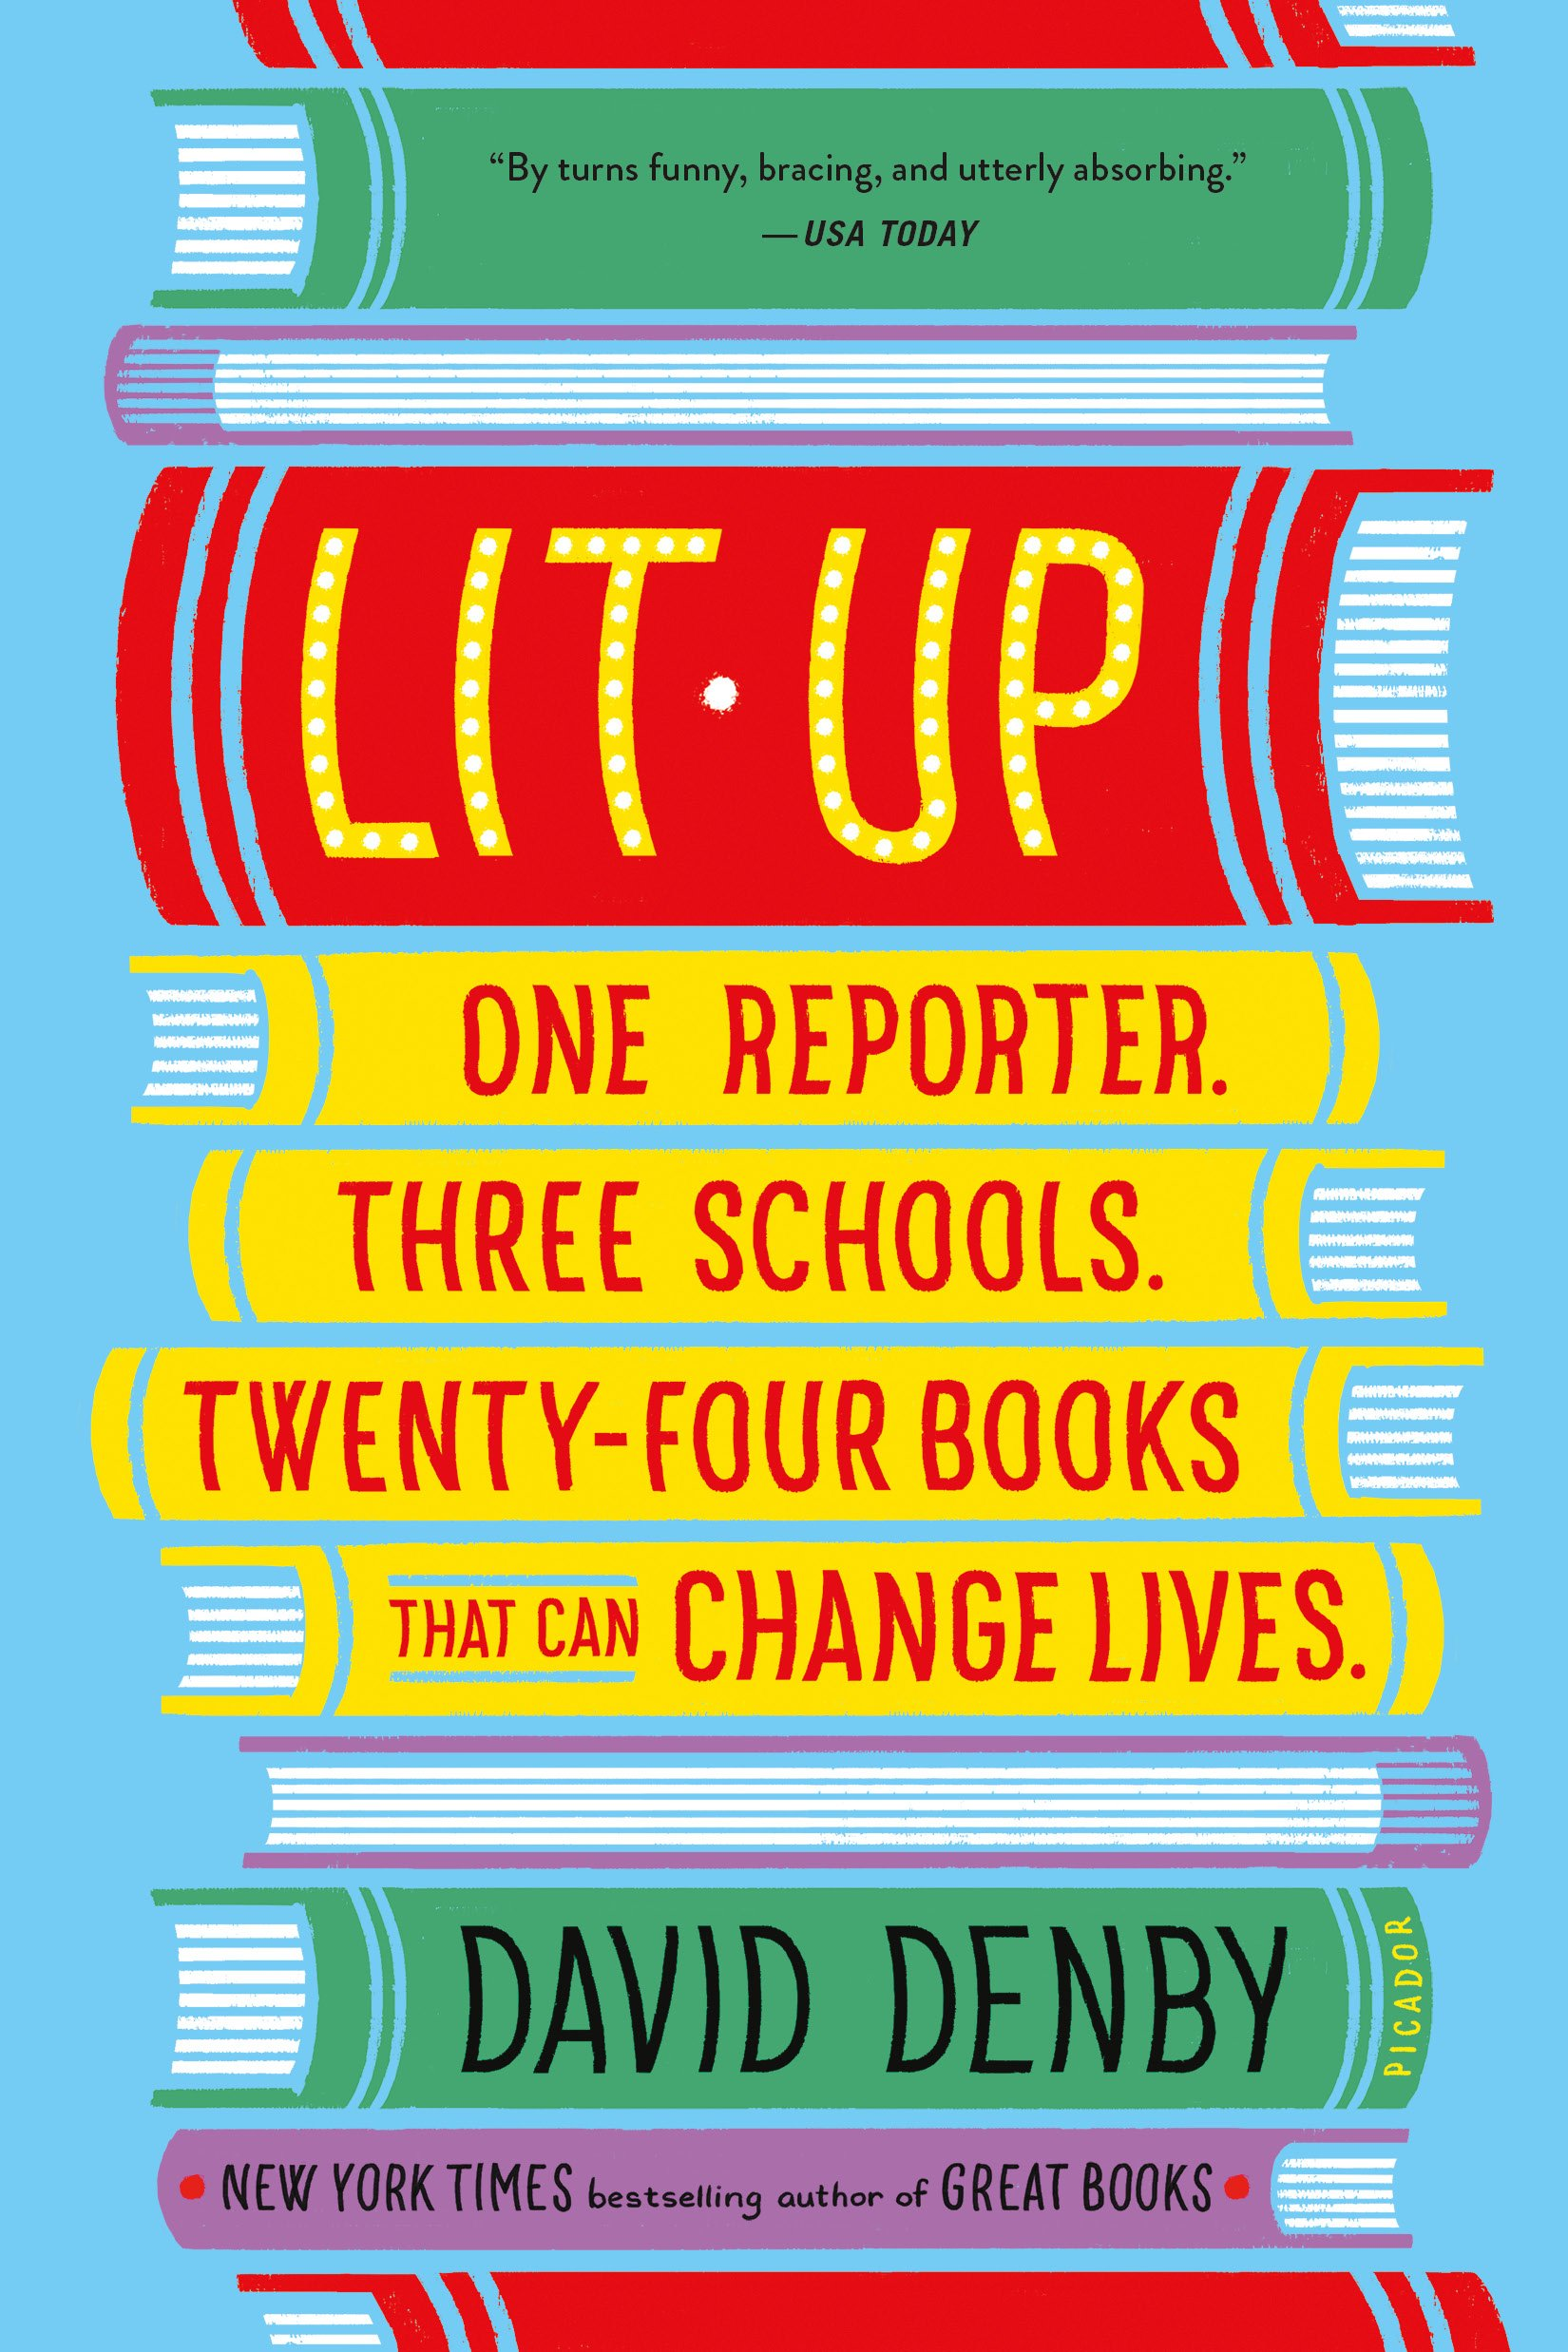 Lit up one reporter three schools twenty four books that can lit up one reporter three schools twenty four books that can change lives david denby 9781250117038 amazon books fandeluxe Gallery